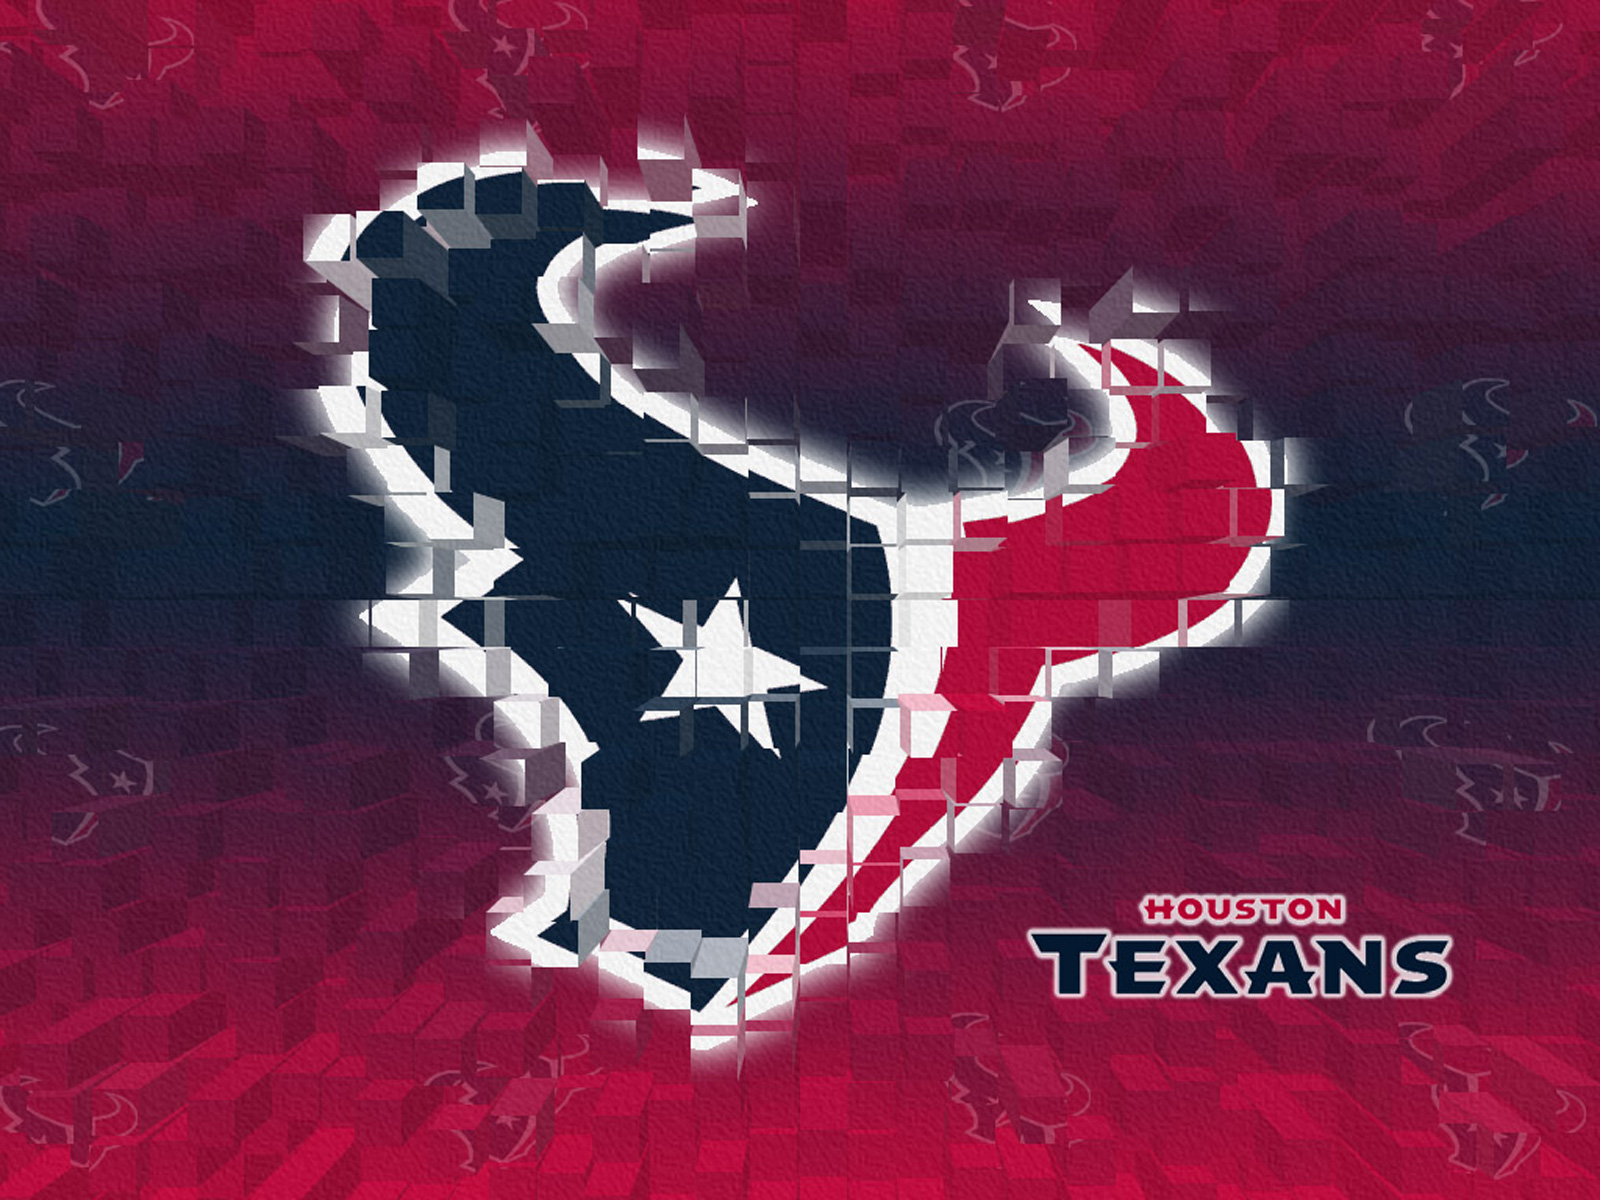 3D logo NFL Houston Texans 2560x1600 of PhotoBoatsCom 1600x1200